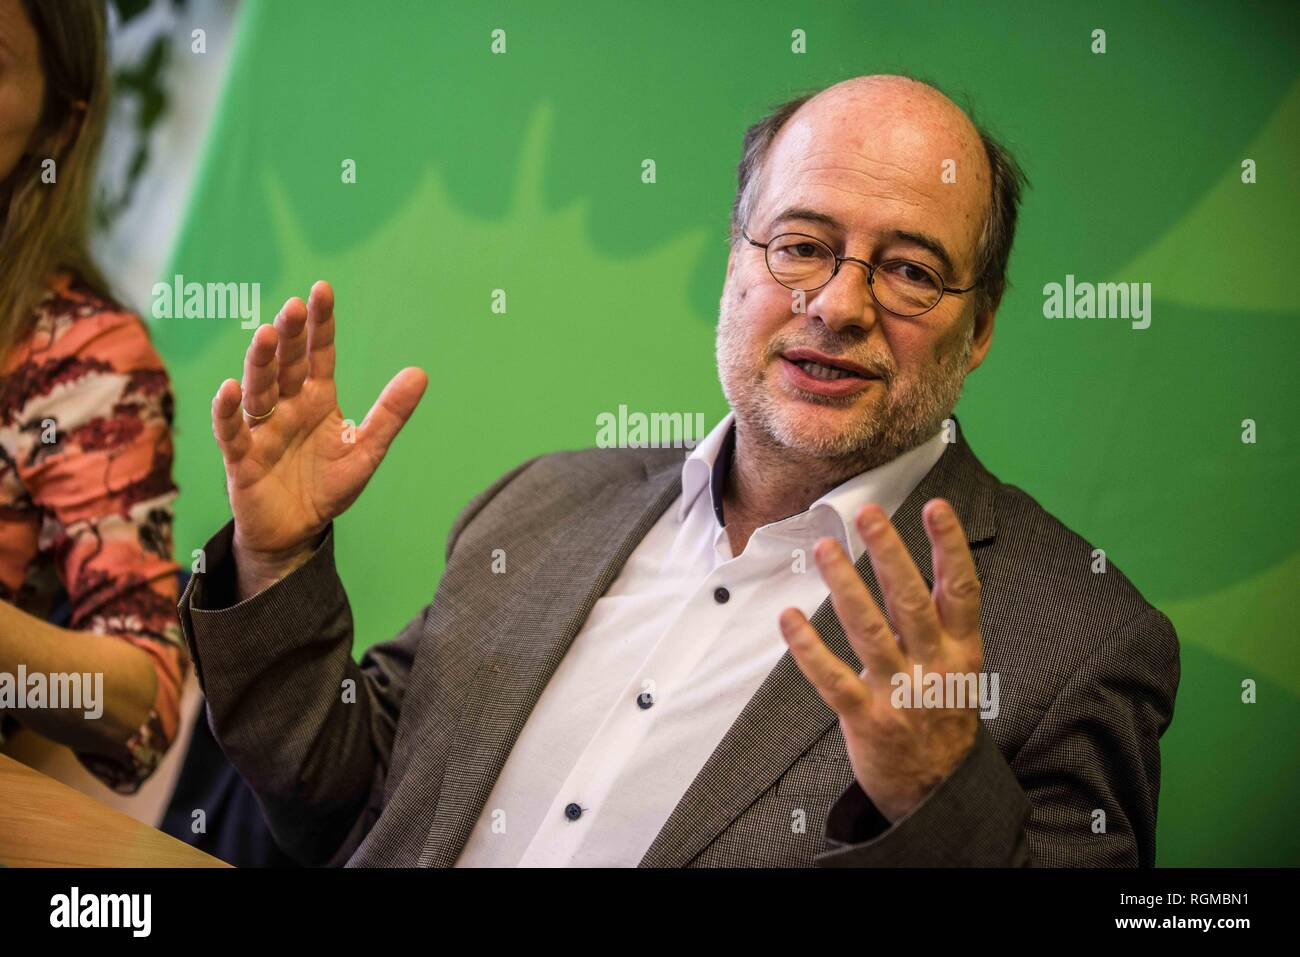 Munich, Bavaria, Germany. 30th Jan, 2019. EIKE HALLITZKY Landesvorsitzende of the Green Party. The Bavarian Green Party presented Henrike Hahn, their European ParliamentSpitzenkandidat for the upcoming European elections (Europawahl). Hahn is a trained technologist and has lived previously in Detroit and Paris. Her strategies are based on ecological and social criteria and fighting against populism and right extremism. The Greens see the European Union as the greatest peace project of our time, thus they have positioned themselves against authoritarianism, populism, xenophobia, and anti - Stock Image